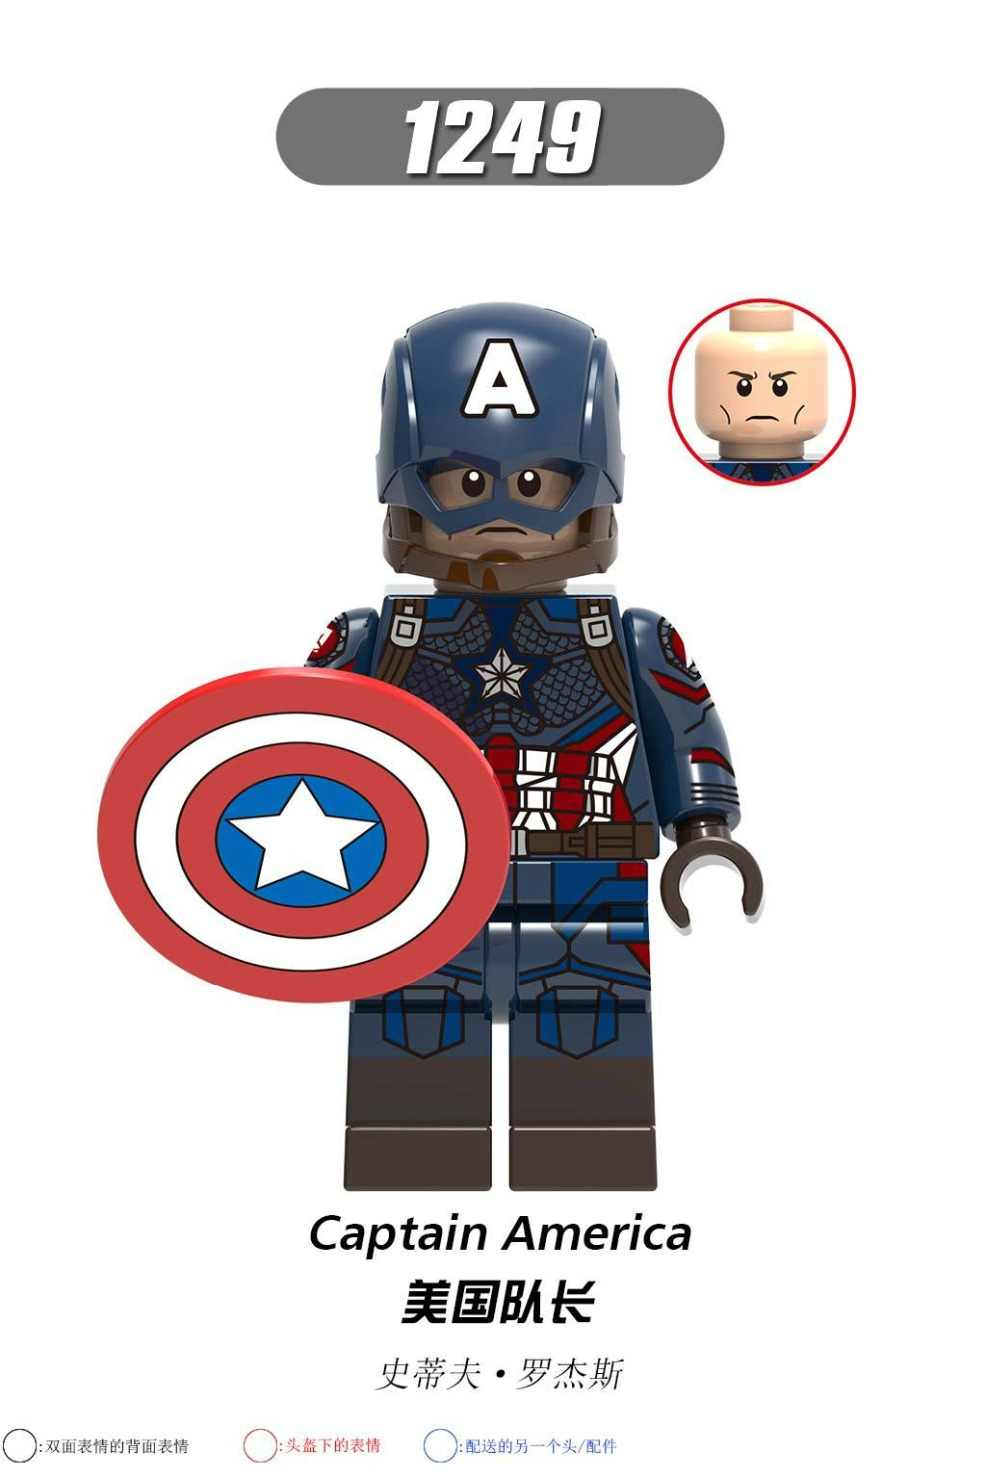 X0256 Legoingly Marvel ant Avengers captain Super hero Black widow Hawkeye Small pepper Raytheon Building module toy Children's